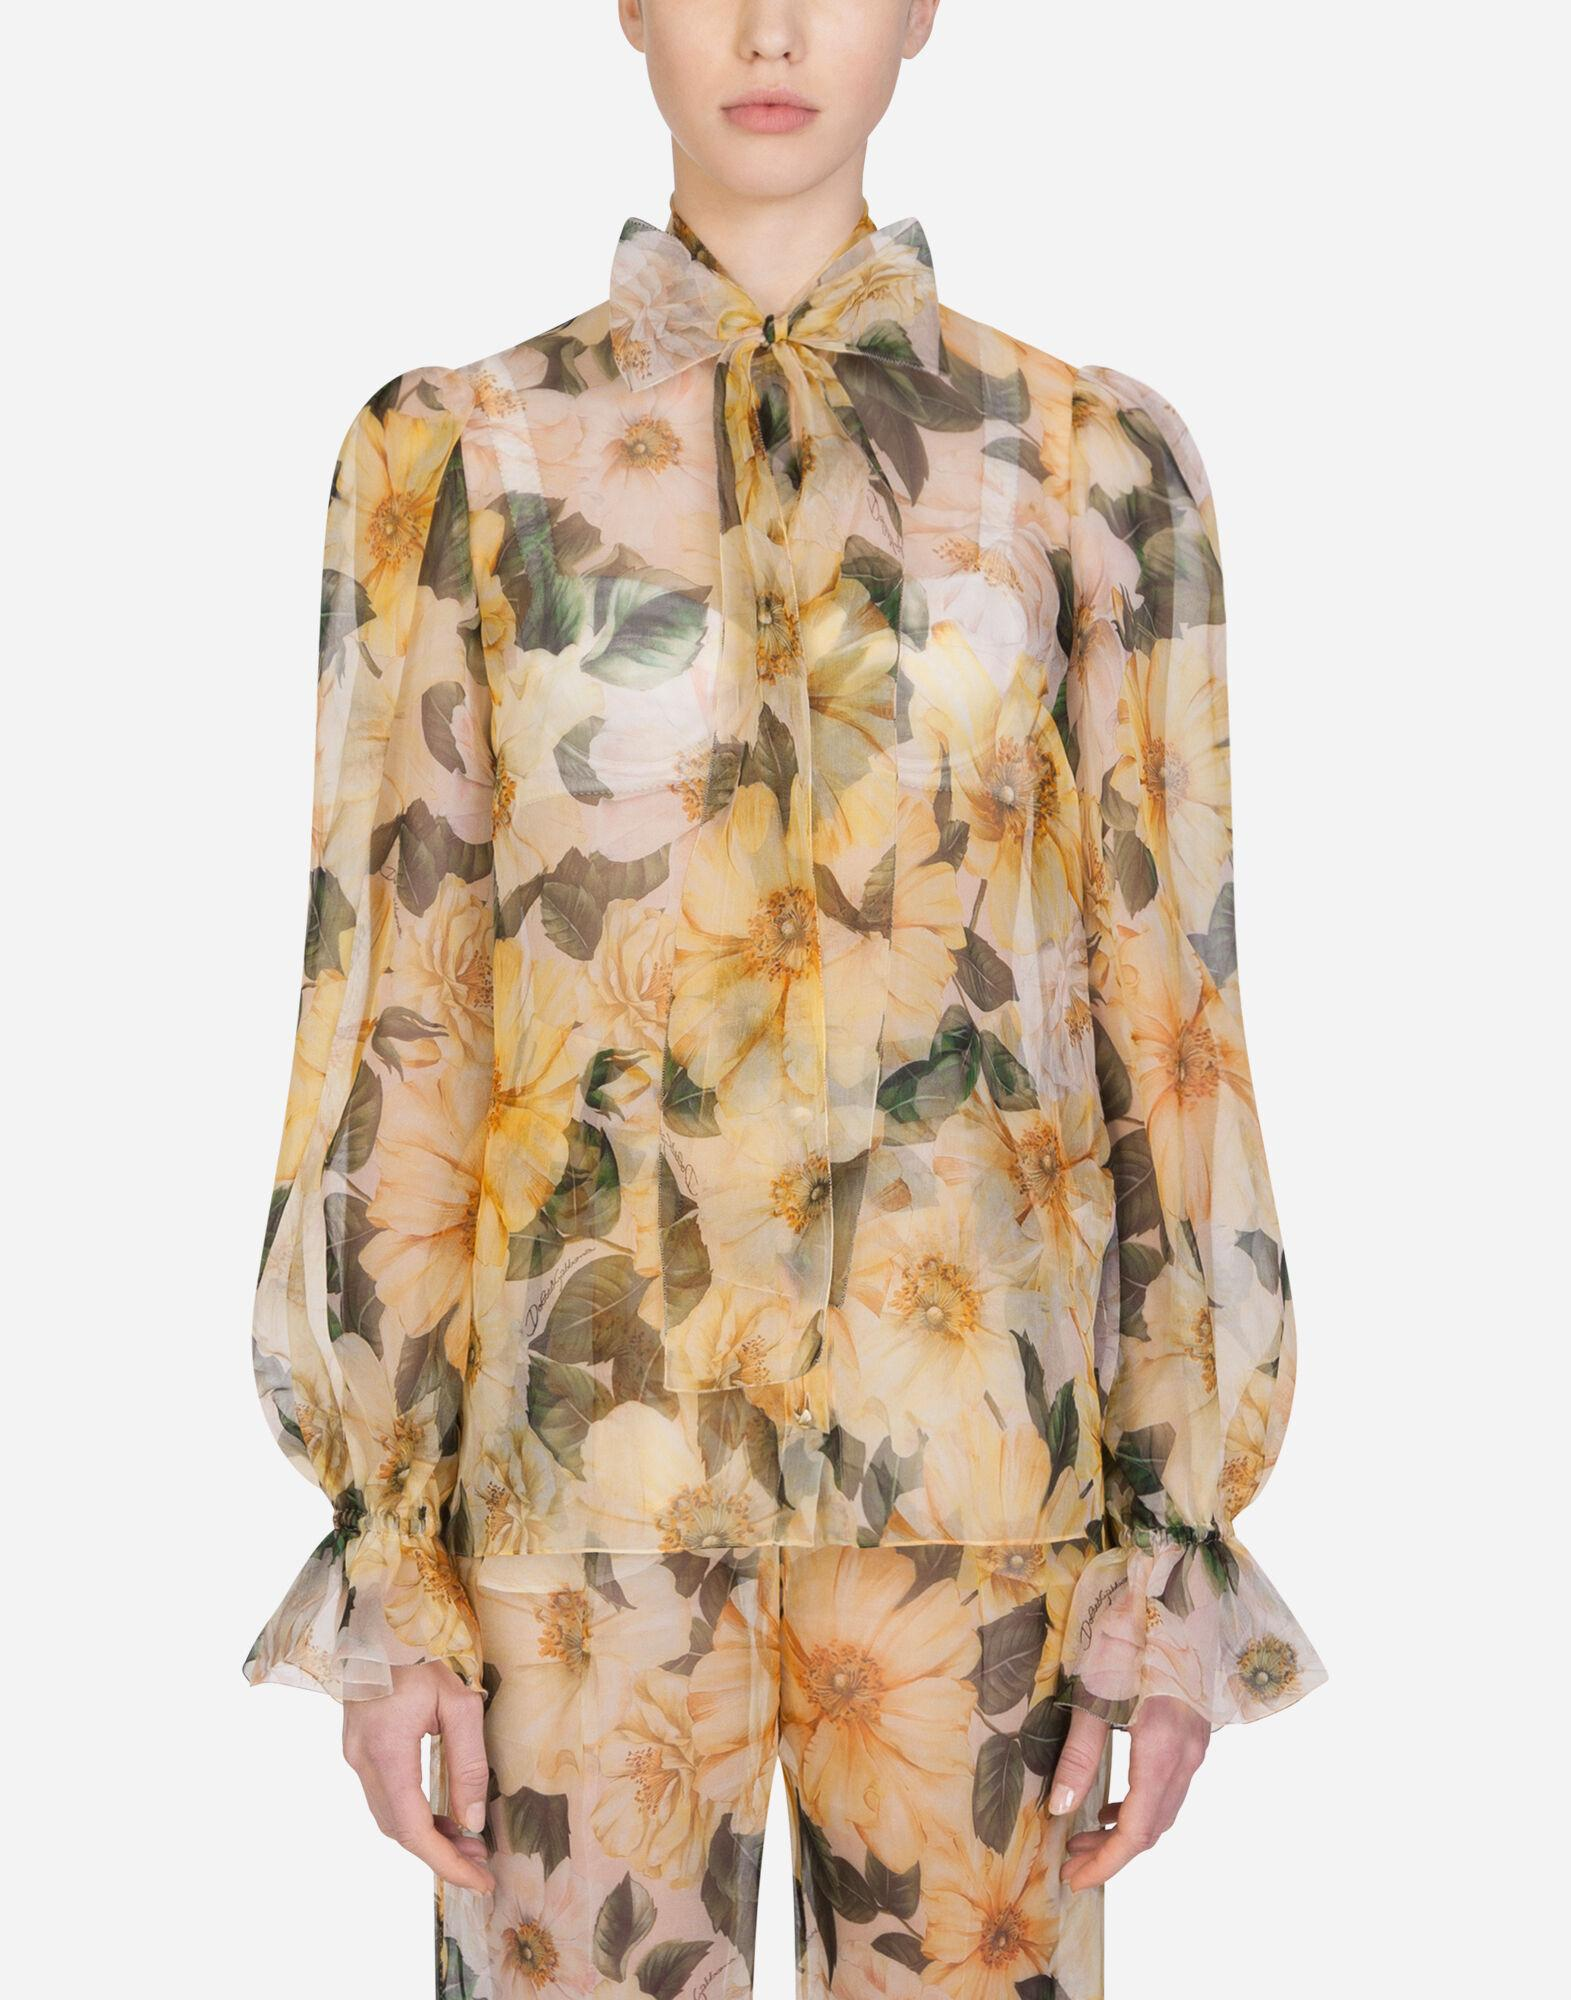 Camellia-print organza shirt with pussy bow